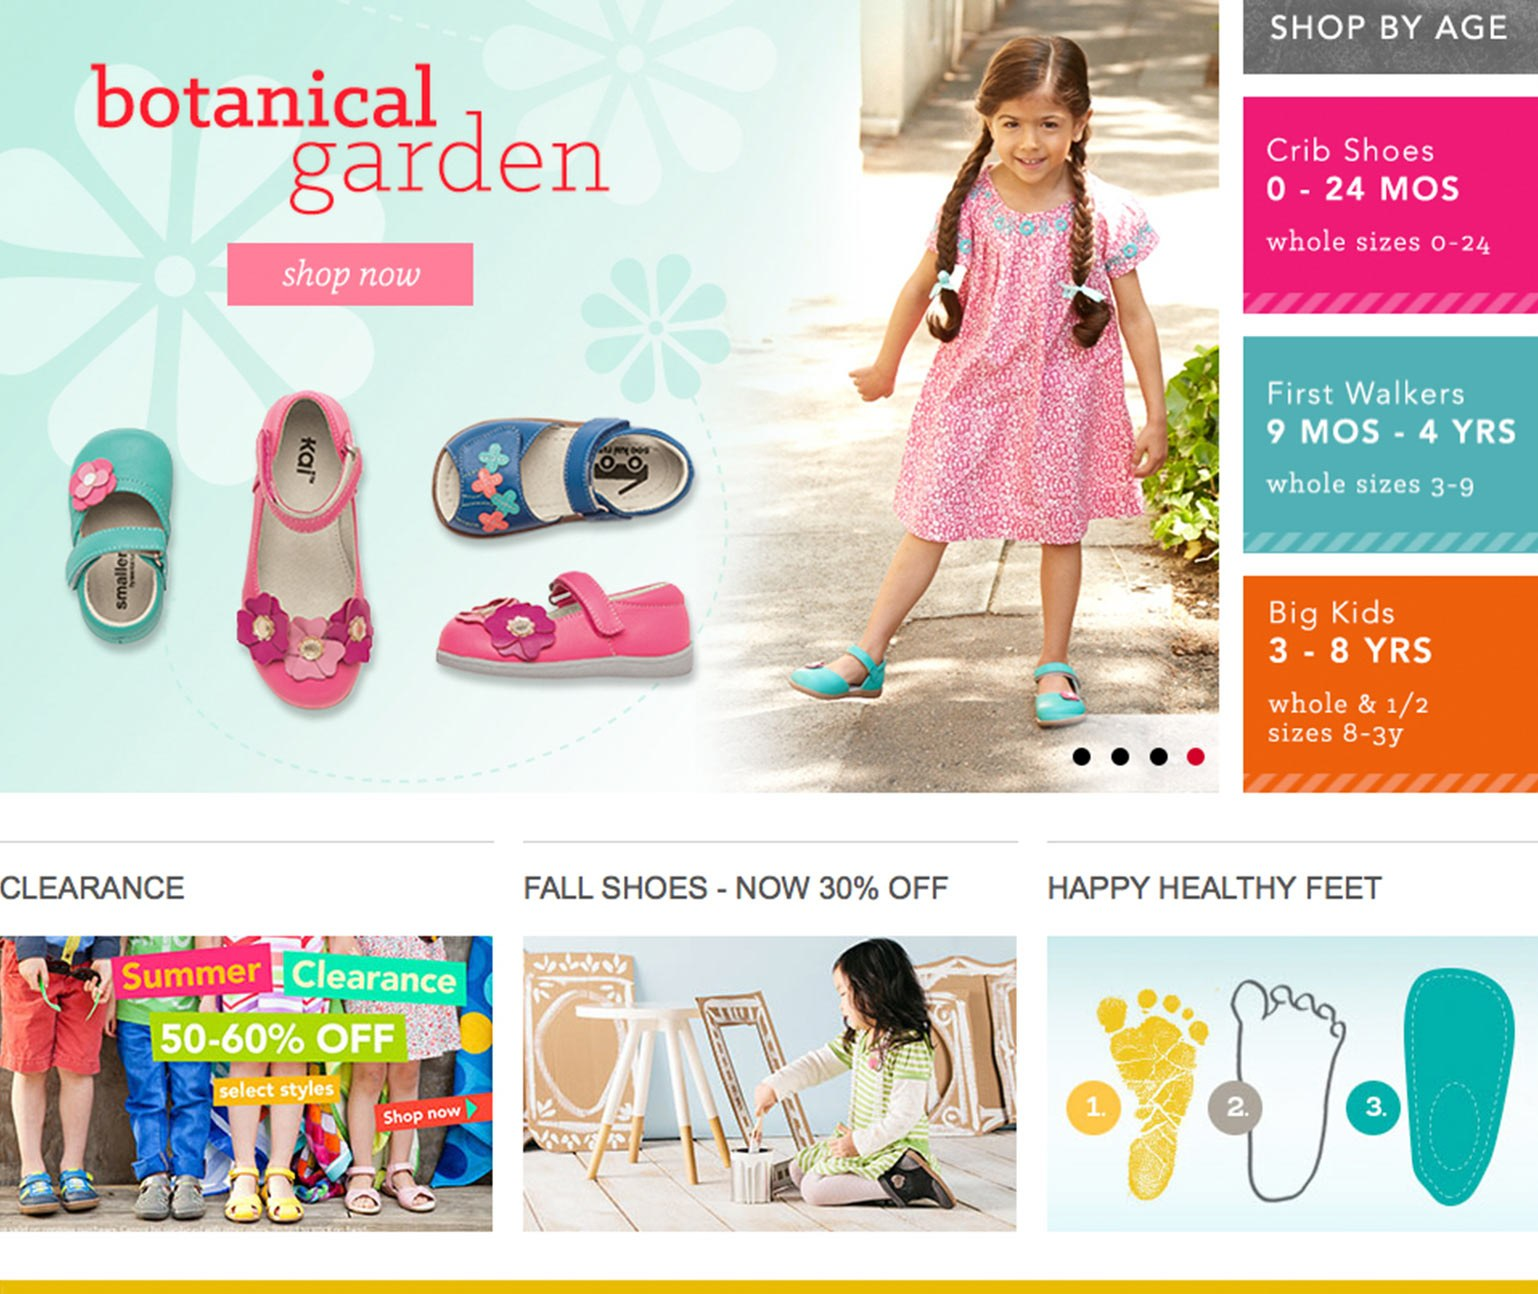 Young girl and children's shoes in gridded layout of ecommerce website